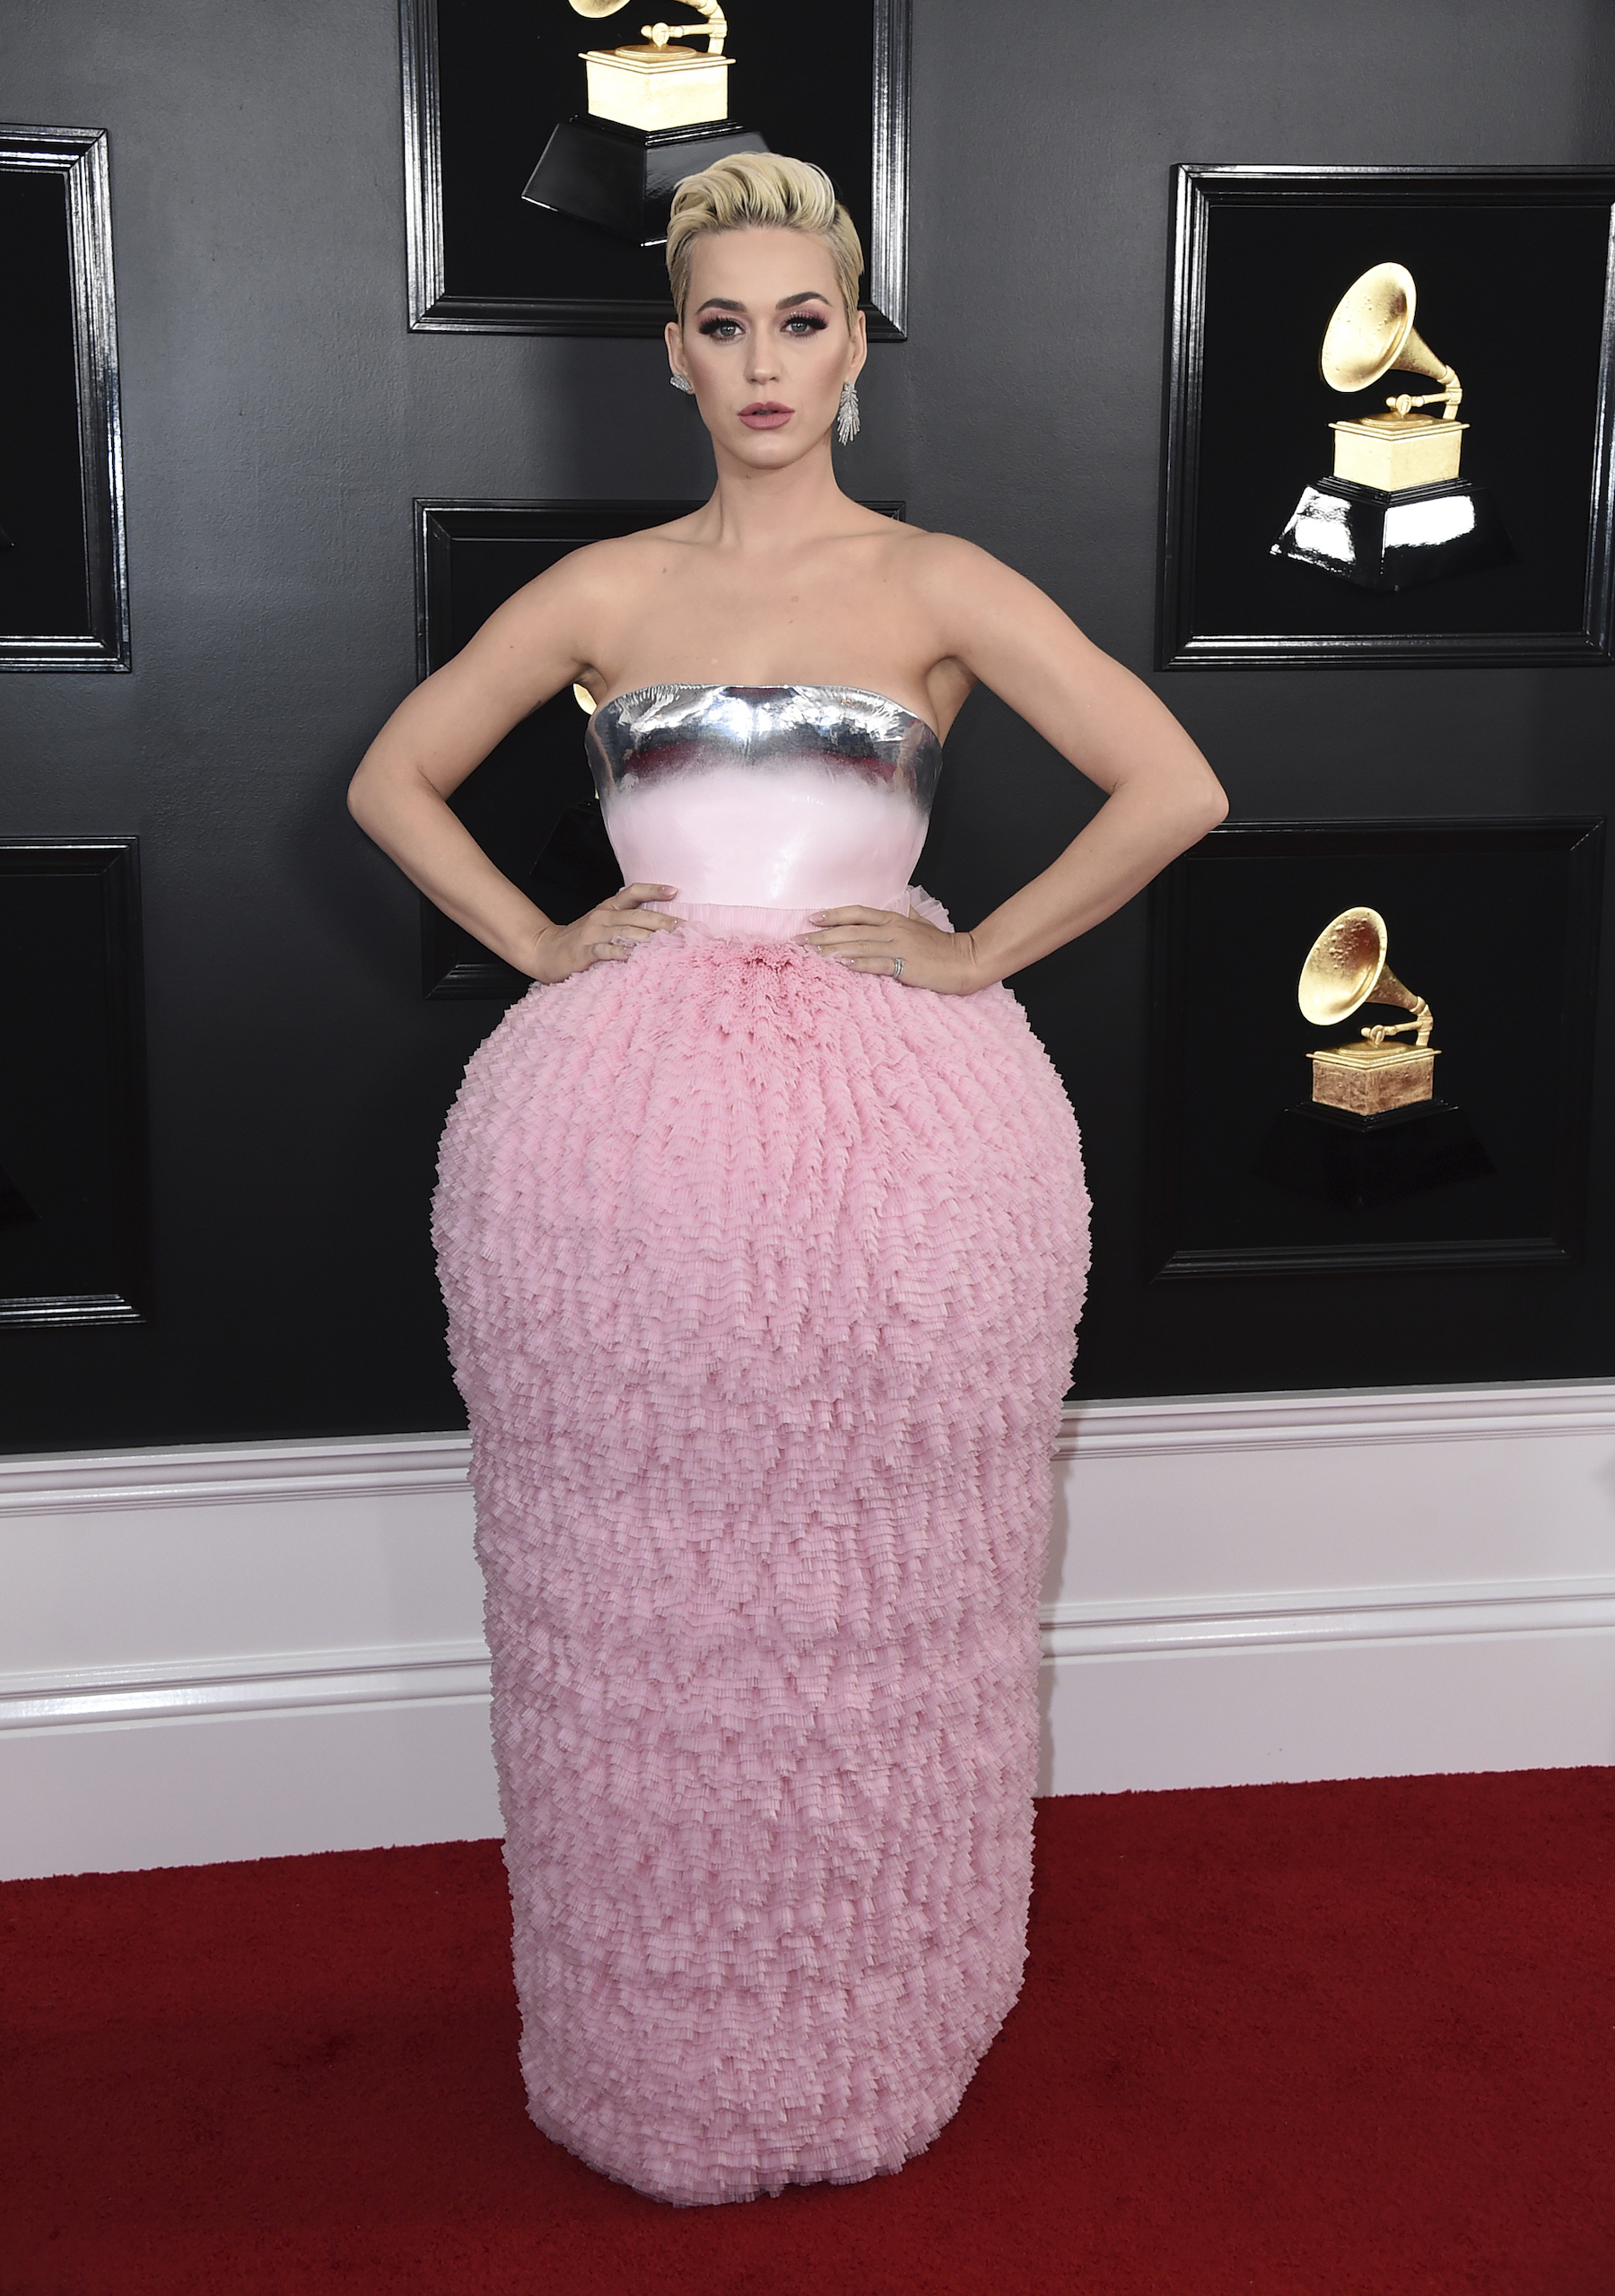 <div class='meta'><div class='origin-logo' data-origin='AP'></div><span class='caption-text' data-credit='Jordan Strauss/Invision/AP'>Katy Perry arrives at the 61st annual Grammy Awards at the Staples Center on Sunday, Feb. 10, 2019, in Los Angeles.</span></div>